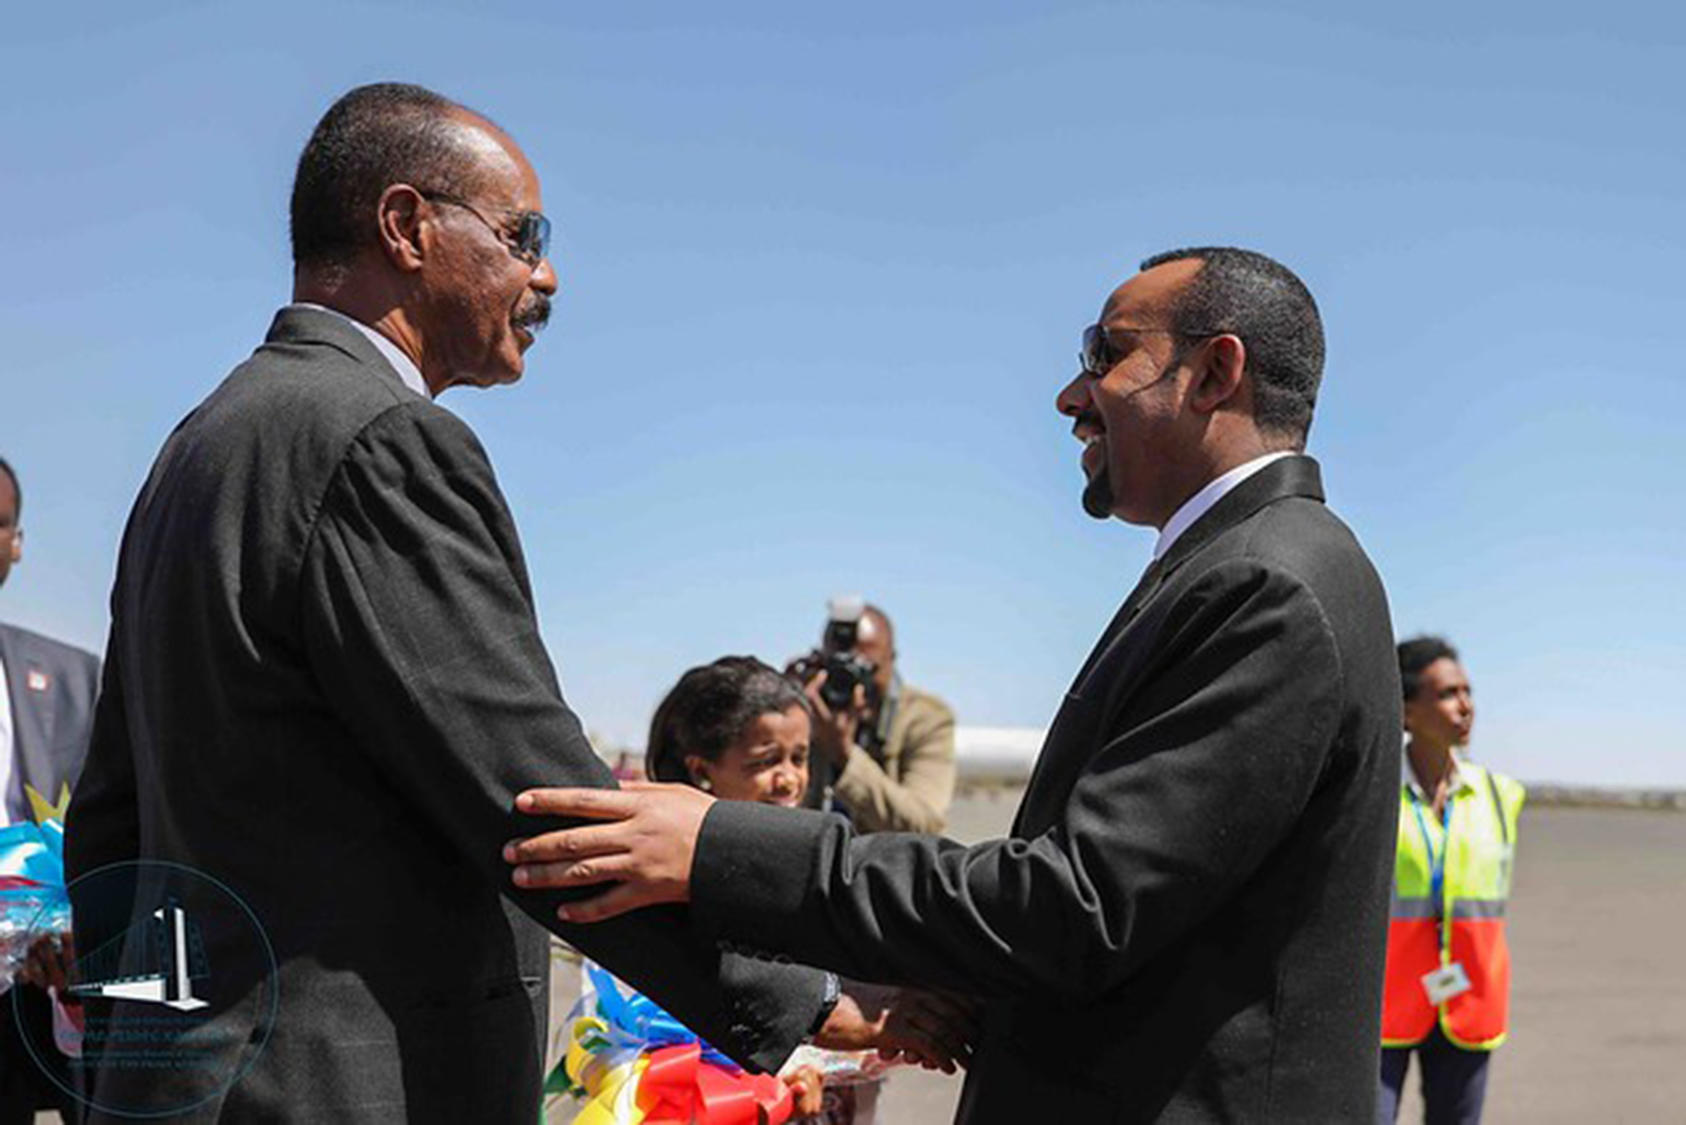 Ethiopia's Abiy Ahmed (right) greets Eritrean President Isaias Afwerki at a bilateral summit in Asmara, Eritrea, July 8, 2018. (Odaw/Wikimedia Commons)